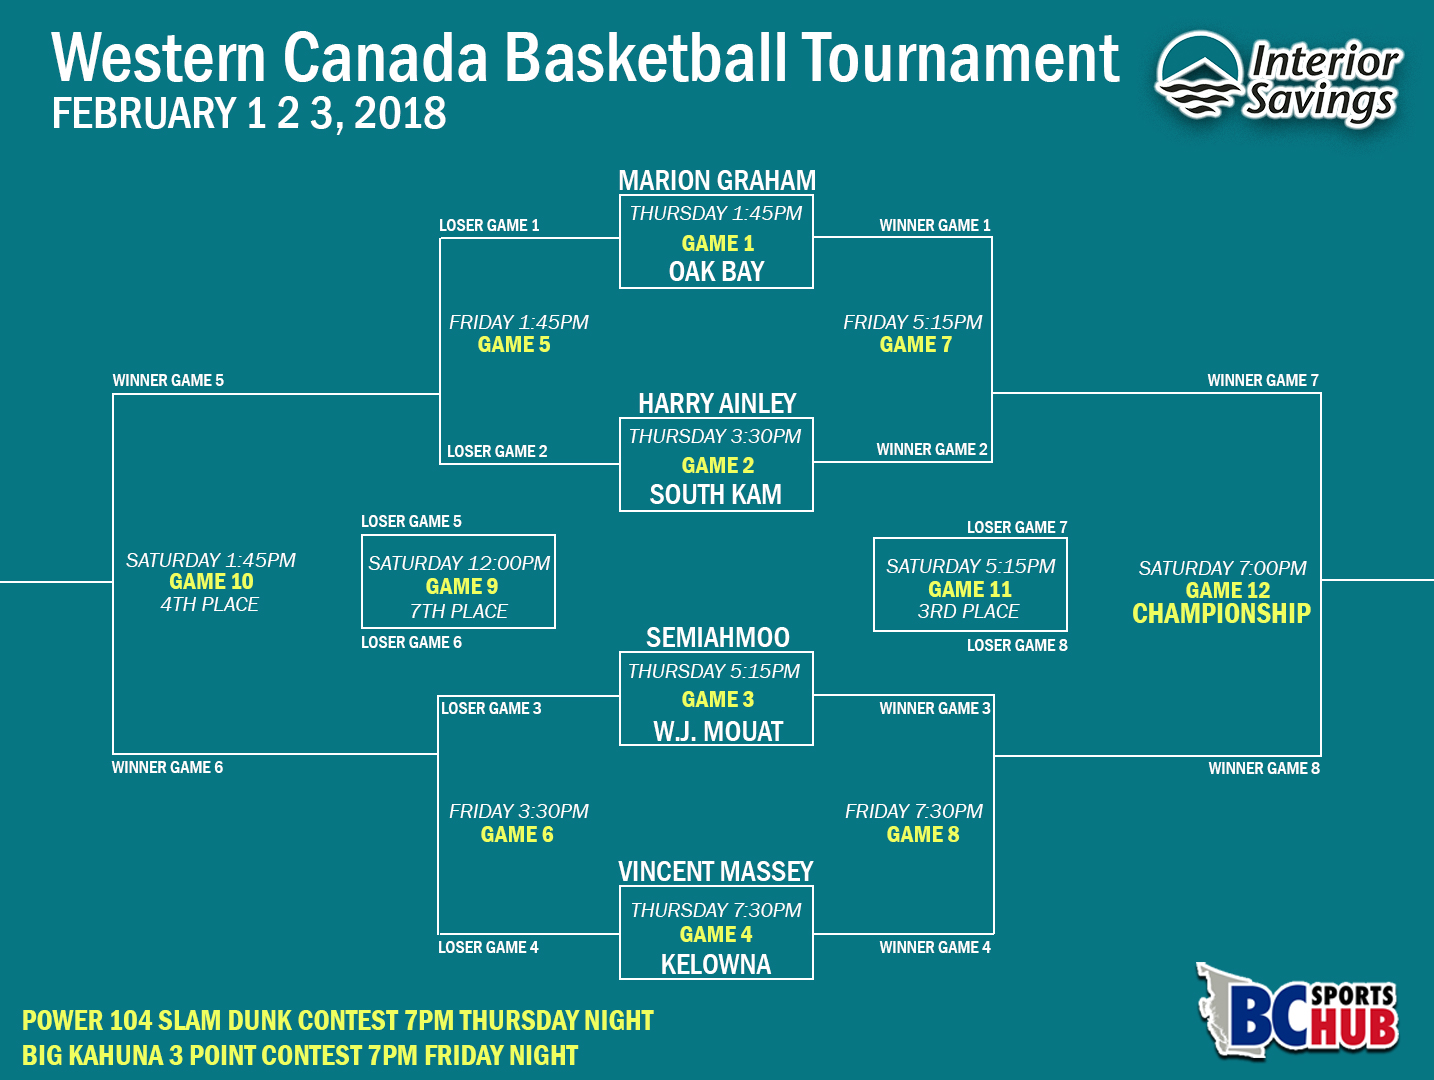 Western Canada Basketball Tournament